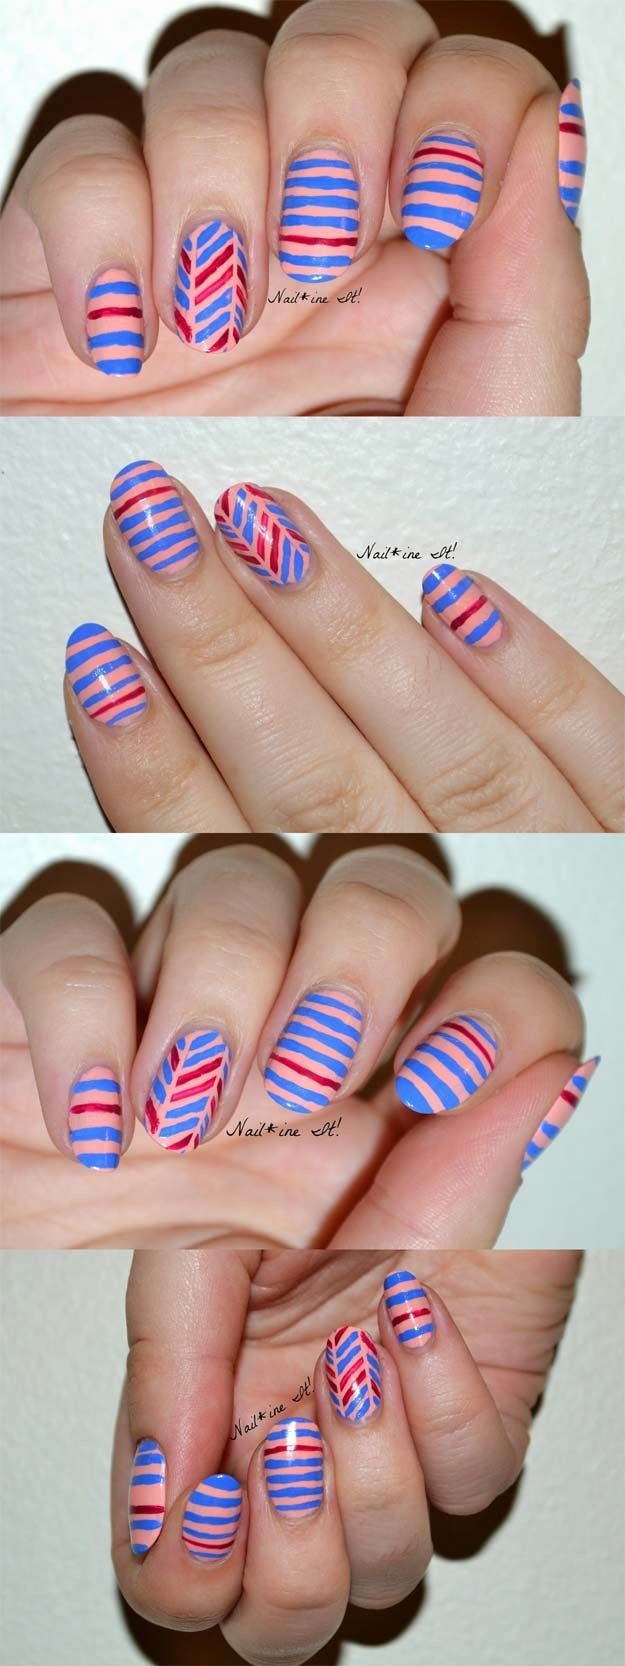 36 Striped Nail Art Ideas Nail Art Stripes Nail Tape And Scotch Tape